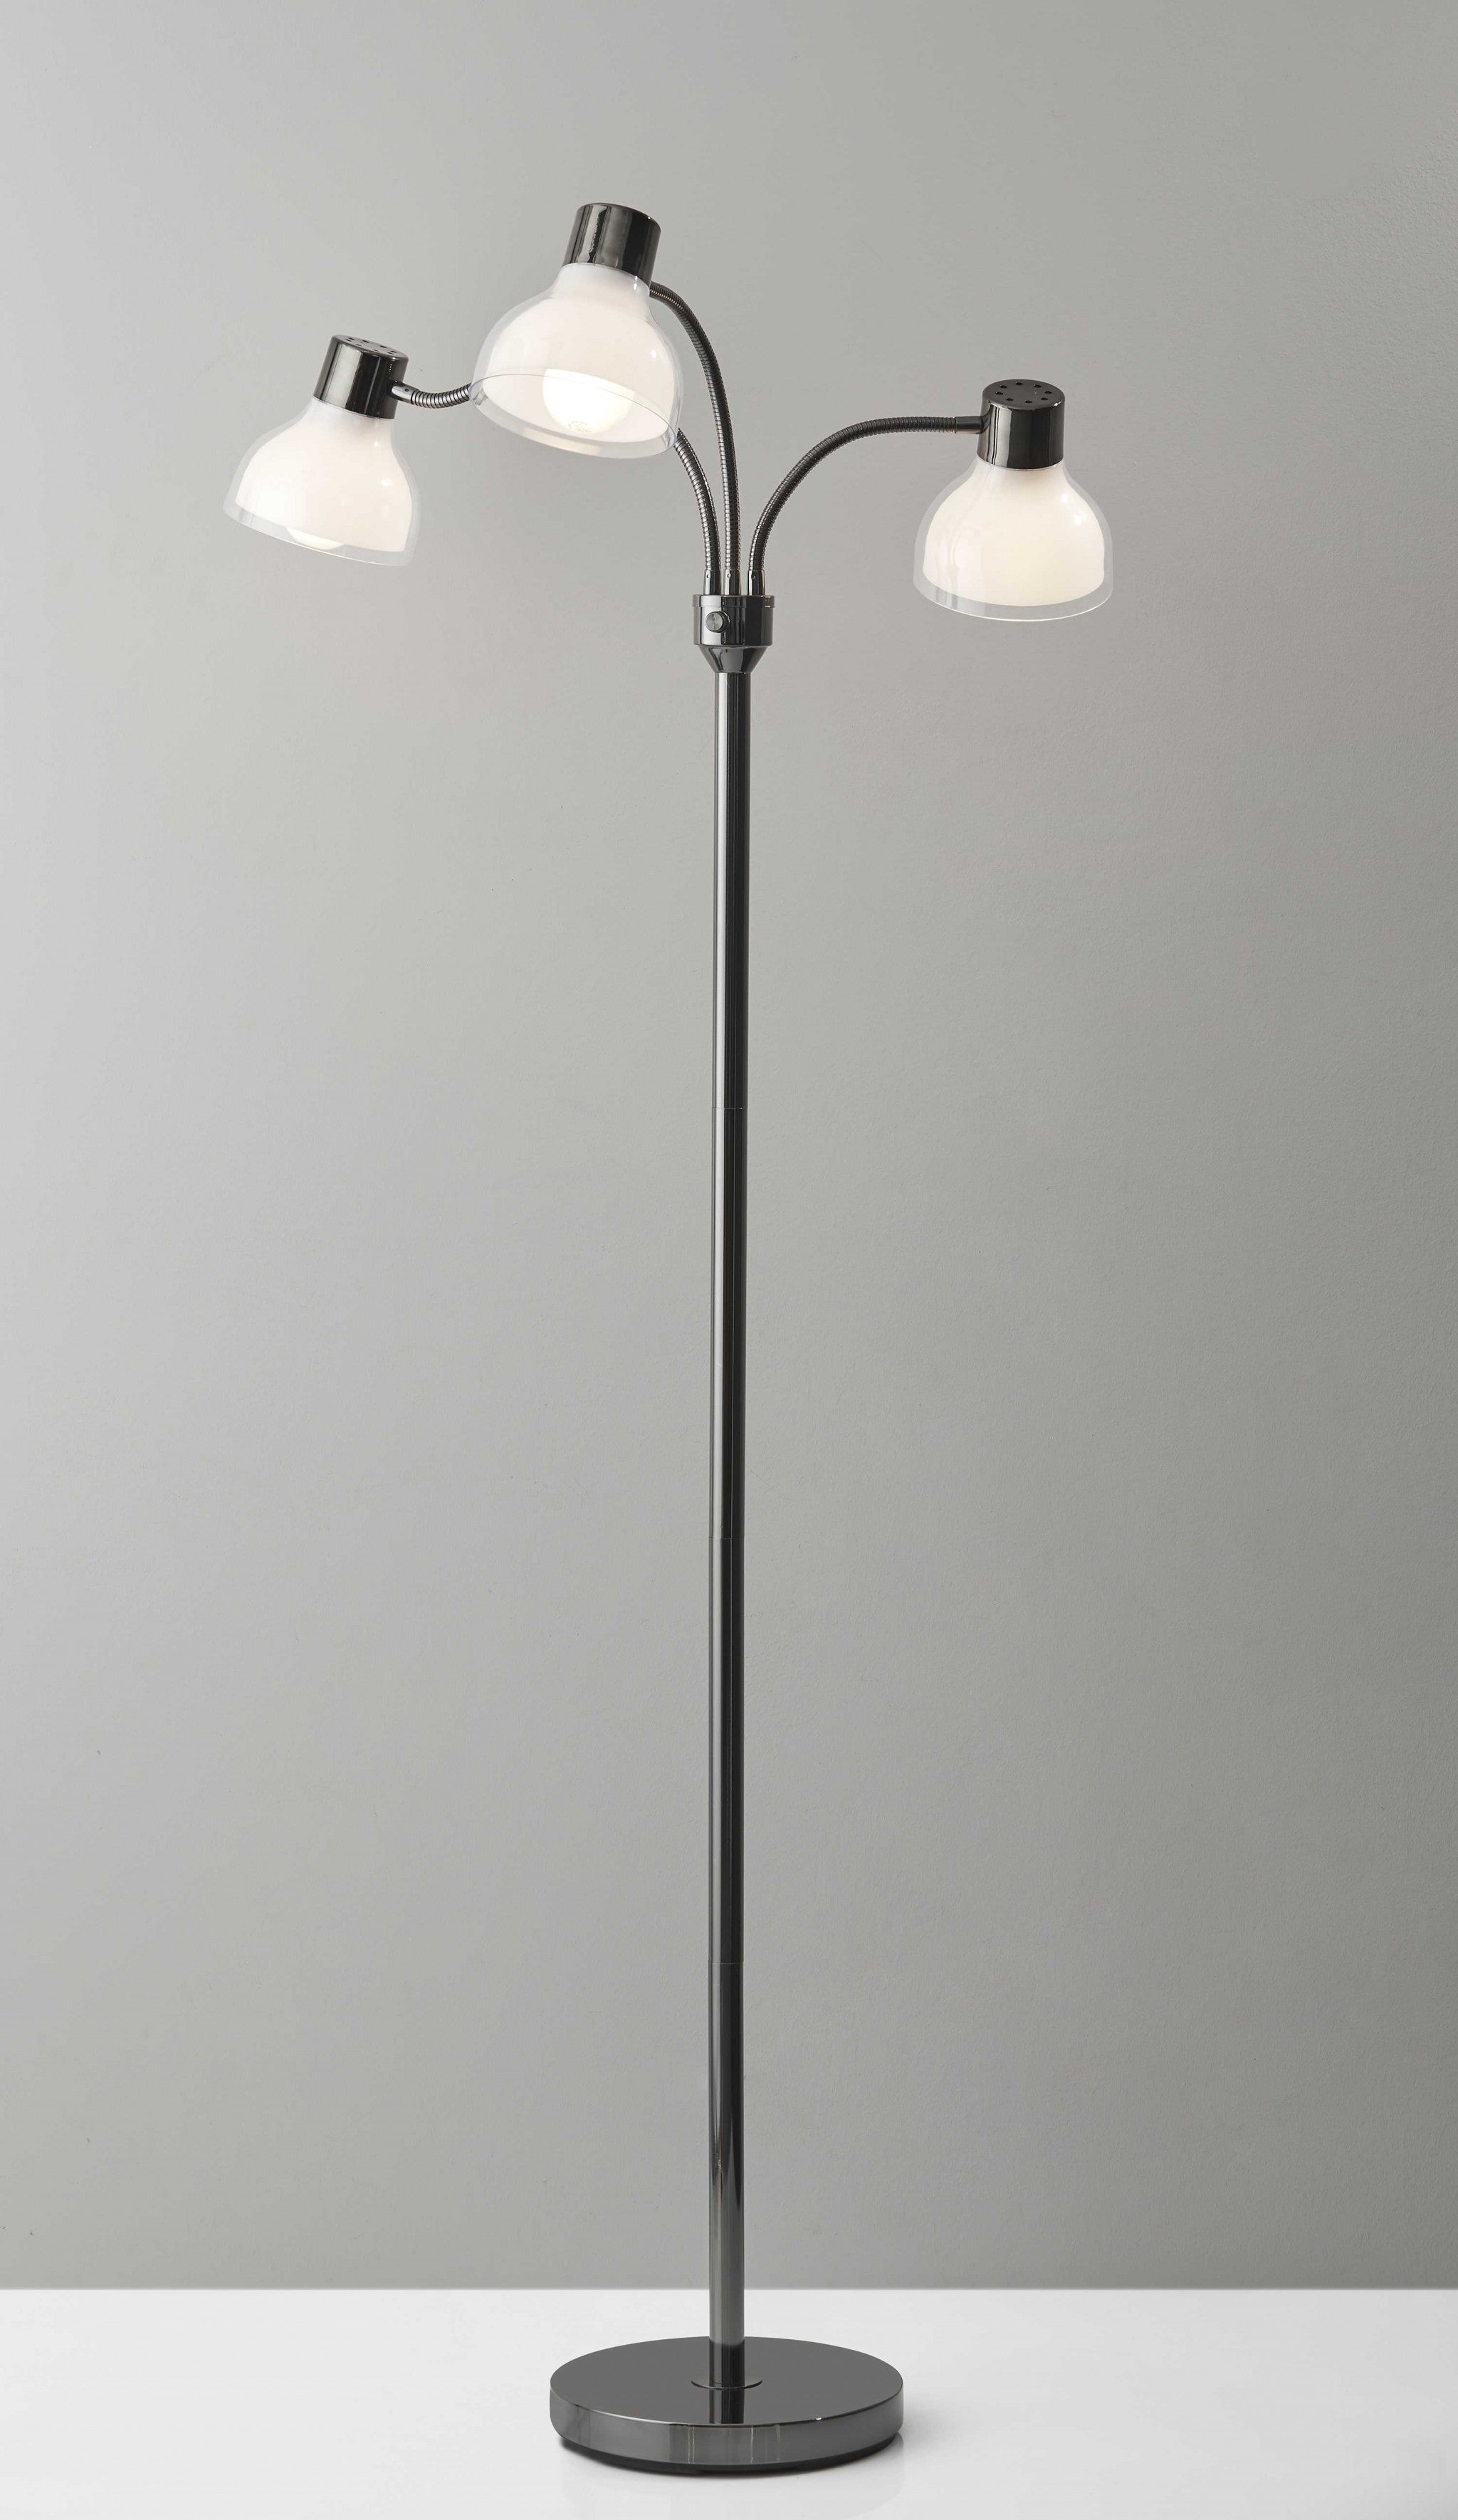 Adjustable Three Light Floor Lamp in Black Nickel Finish With Frosted Inner Shades